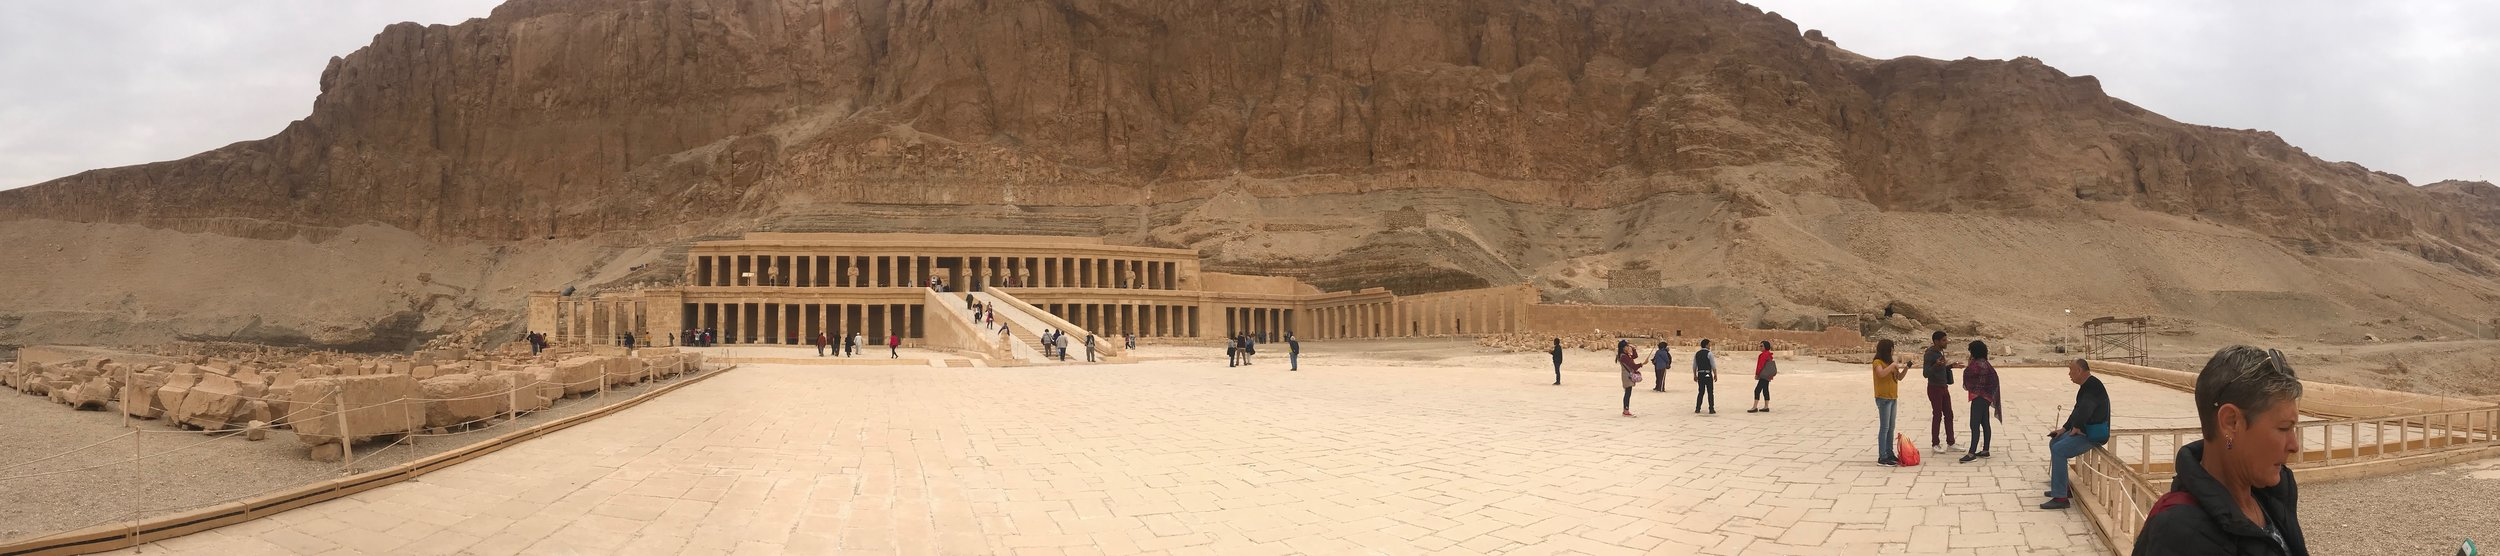 Grand entrance to the Mortuary Temple of Queen Hatshepsut